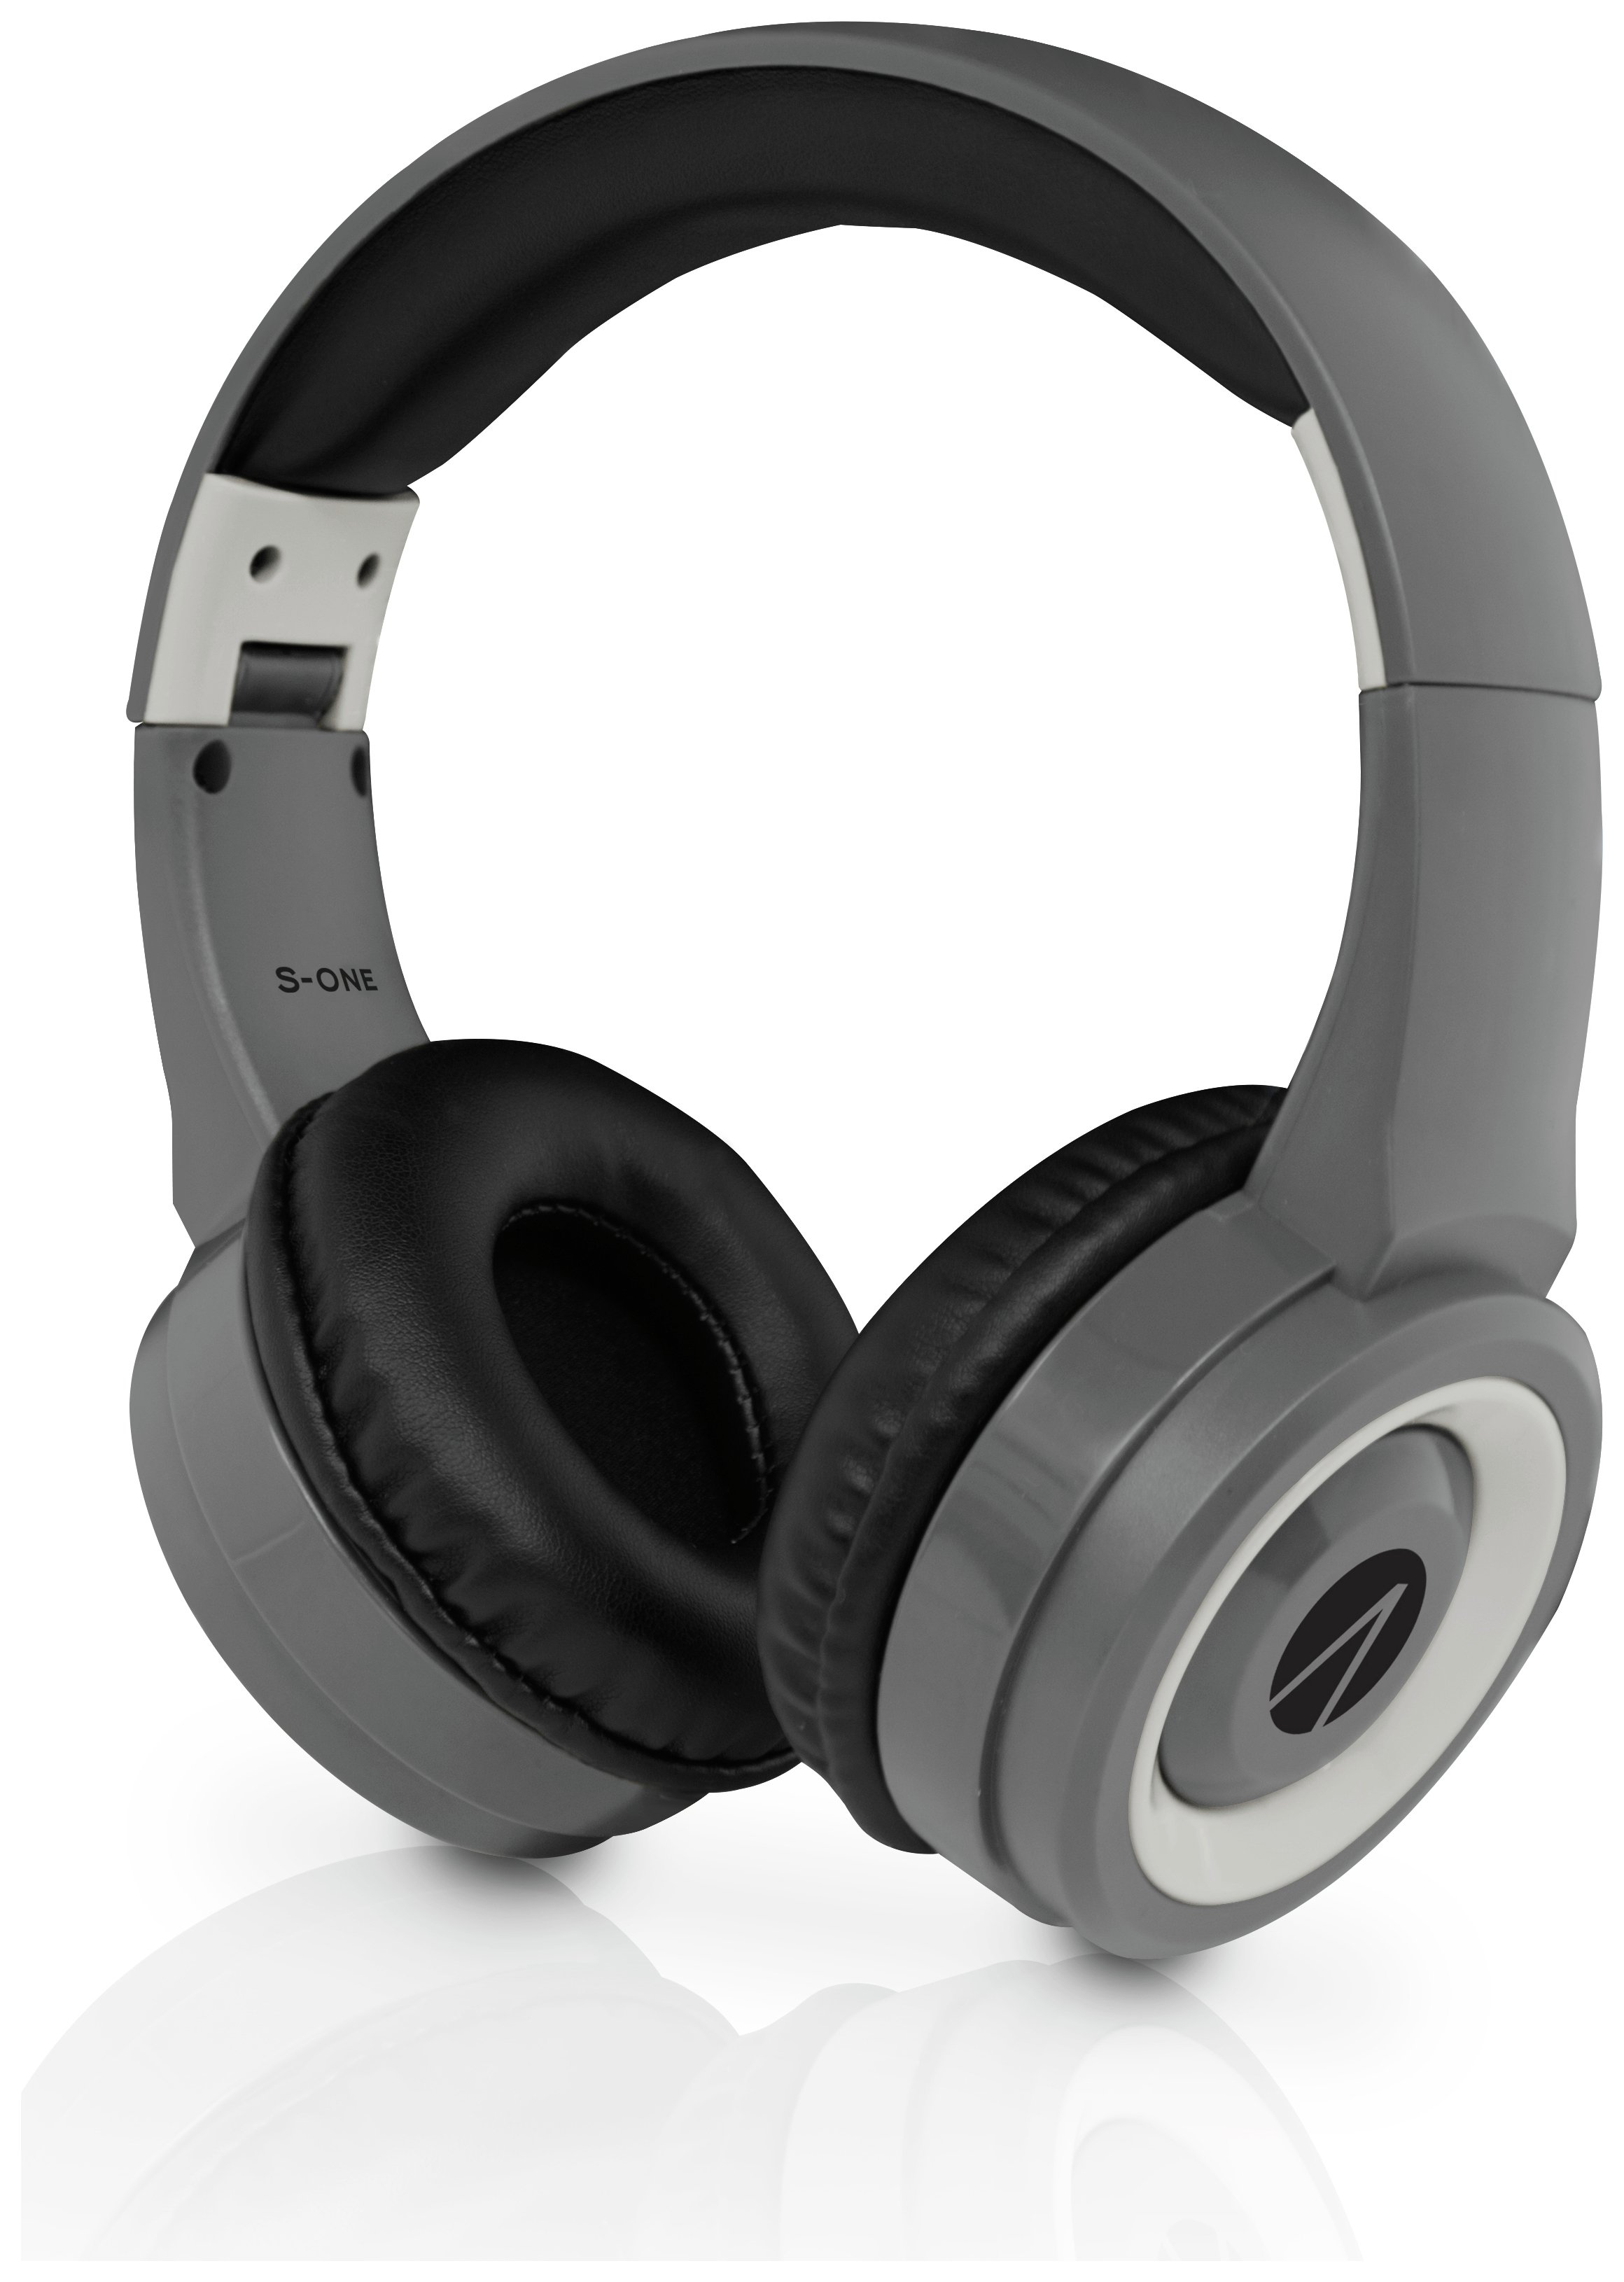 Image of S-1 Stereo Gaming Headset